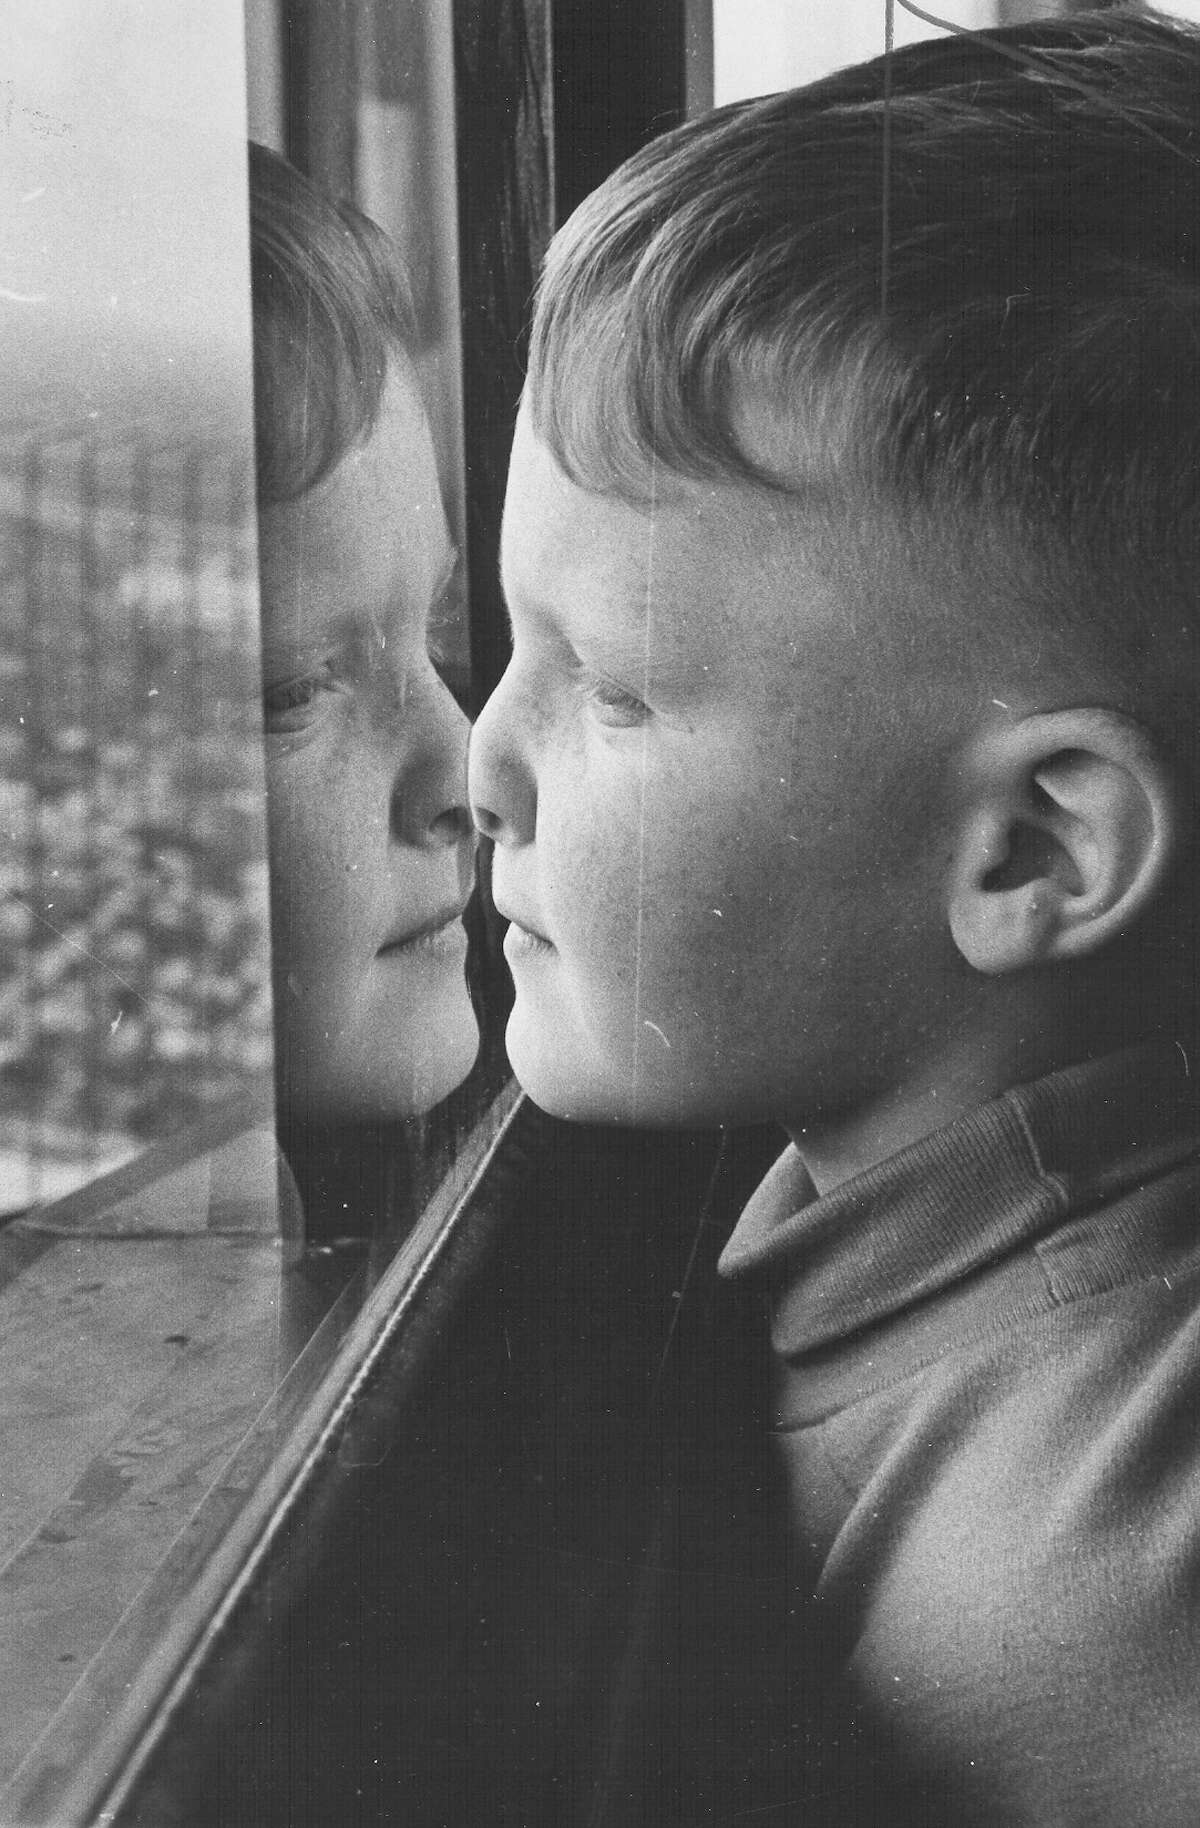 Stephen Sykes of Odessa presses his nose to the glass while taking in the view from the observation deck at the top of the Tower of the Americas during HemisFair '68 on April 11, 1968.